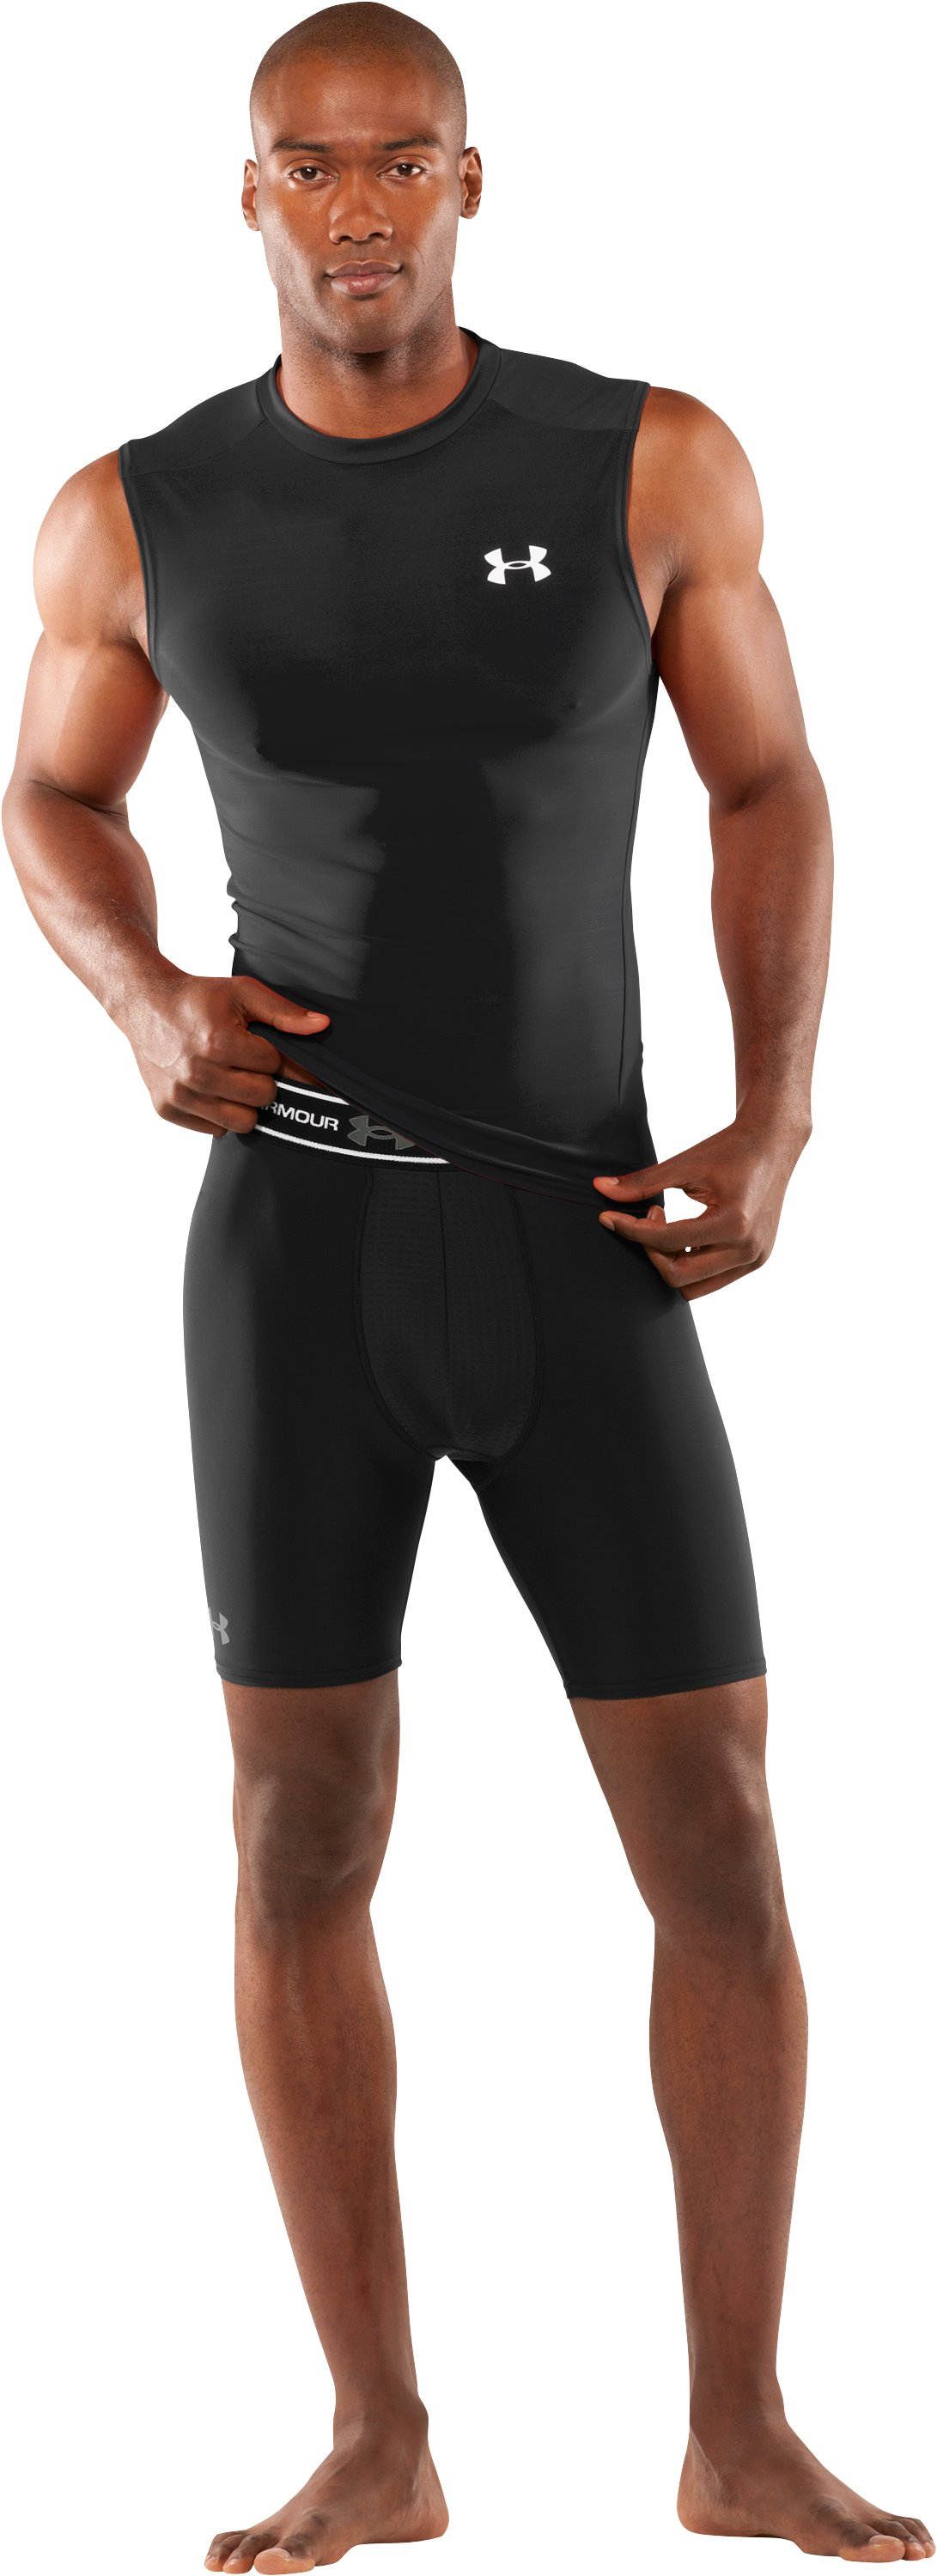 "Men's Ventilated 7"" Compression Shorts, Black"